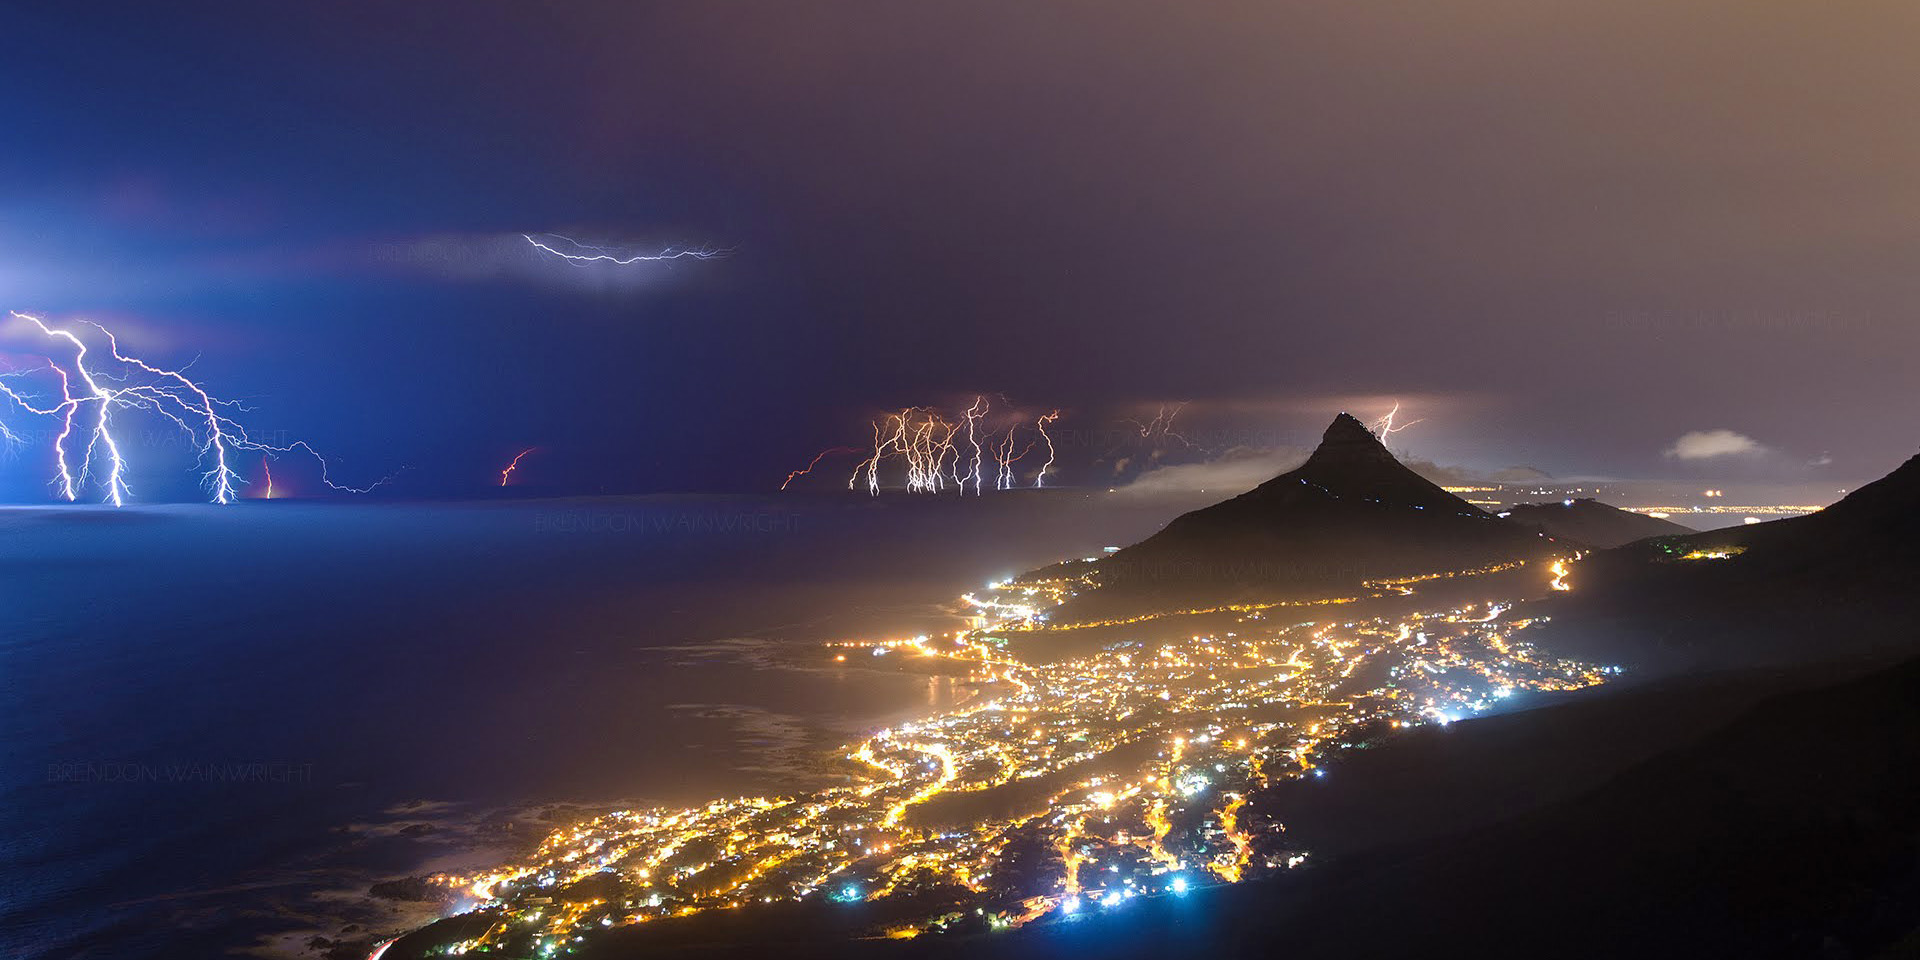 Camps Bay, Clifton and Lions Head